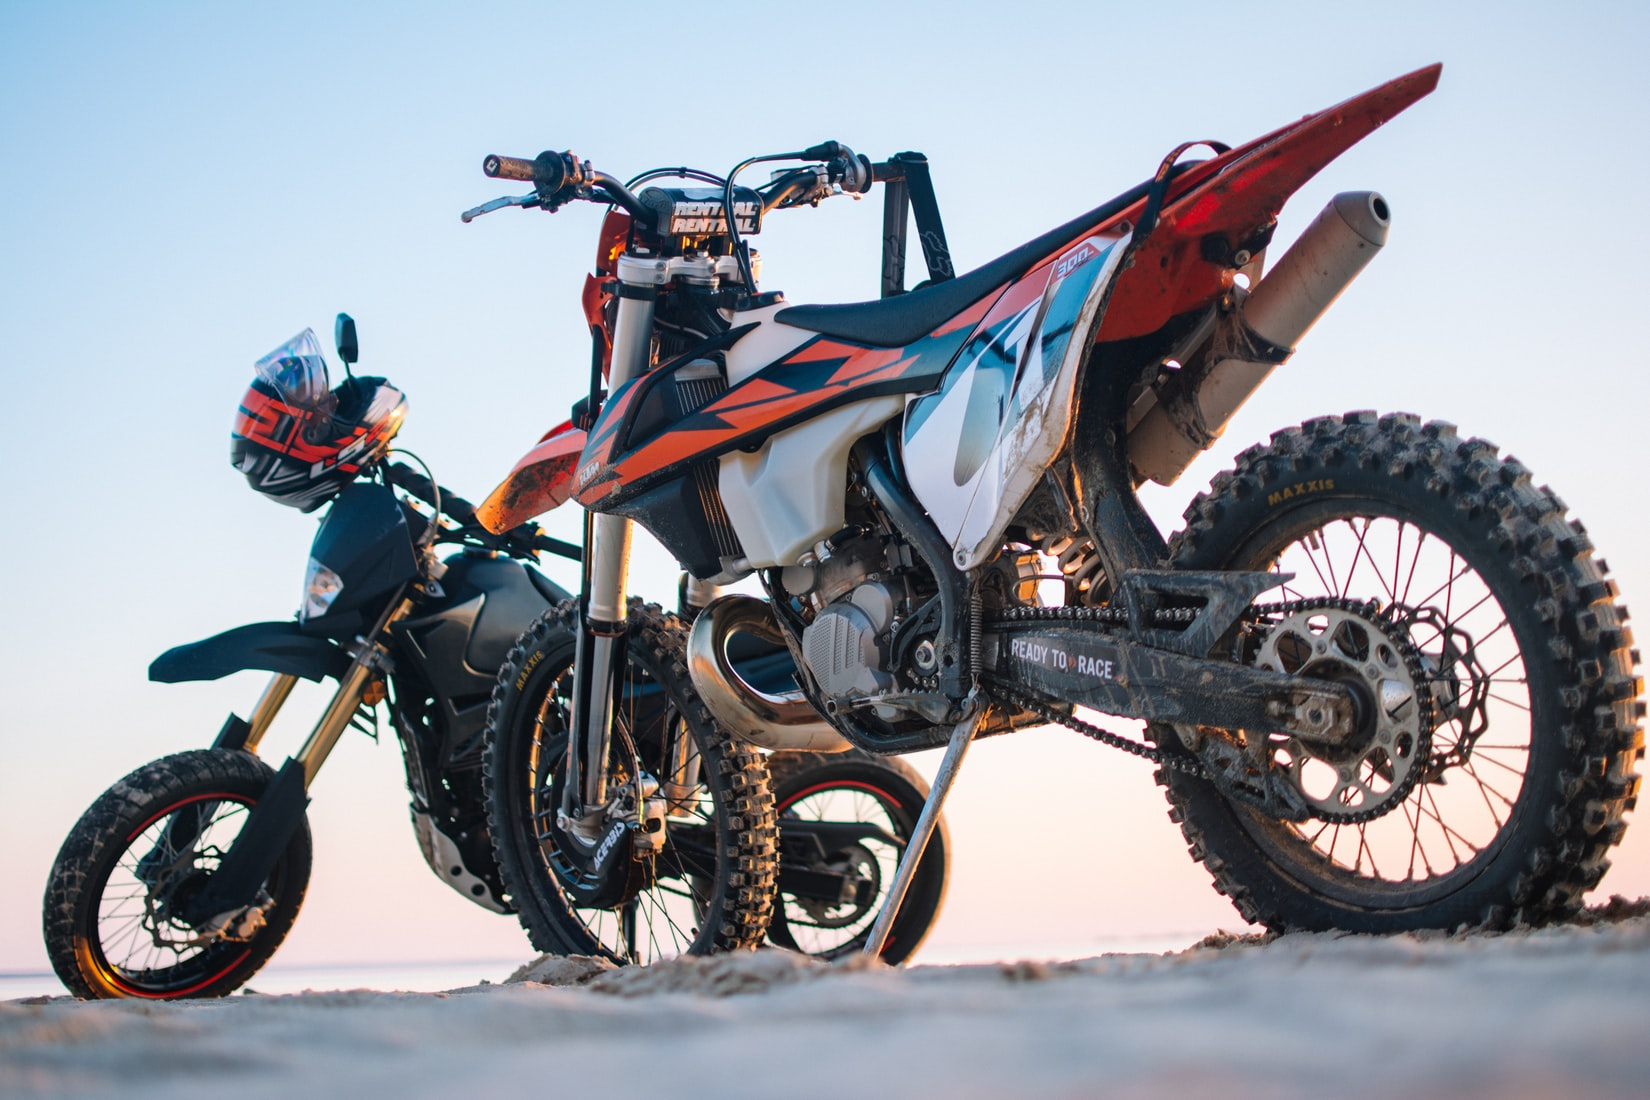 Why Are Dirt Bikes So Loud?